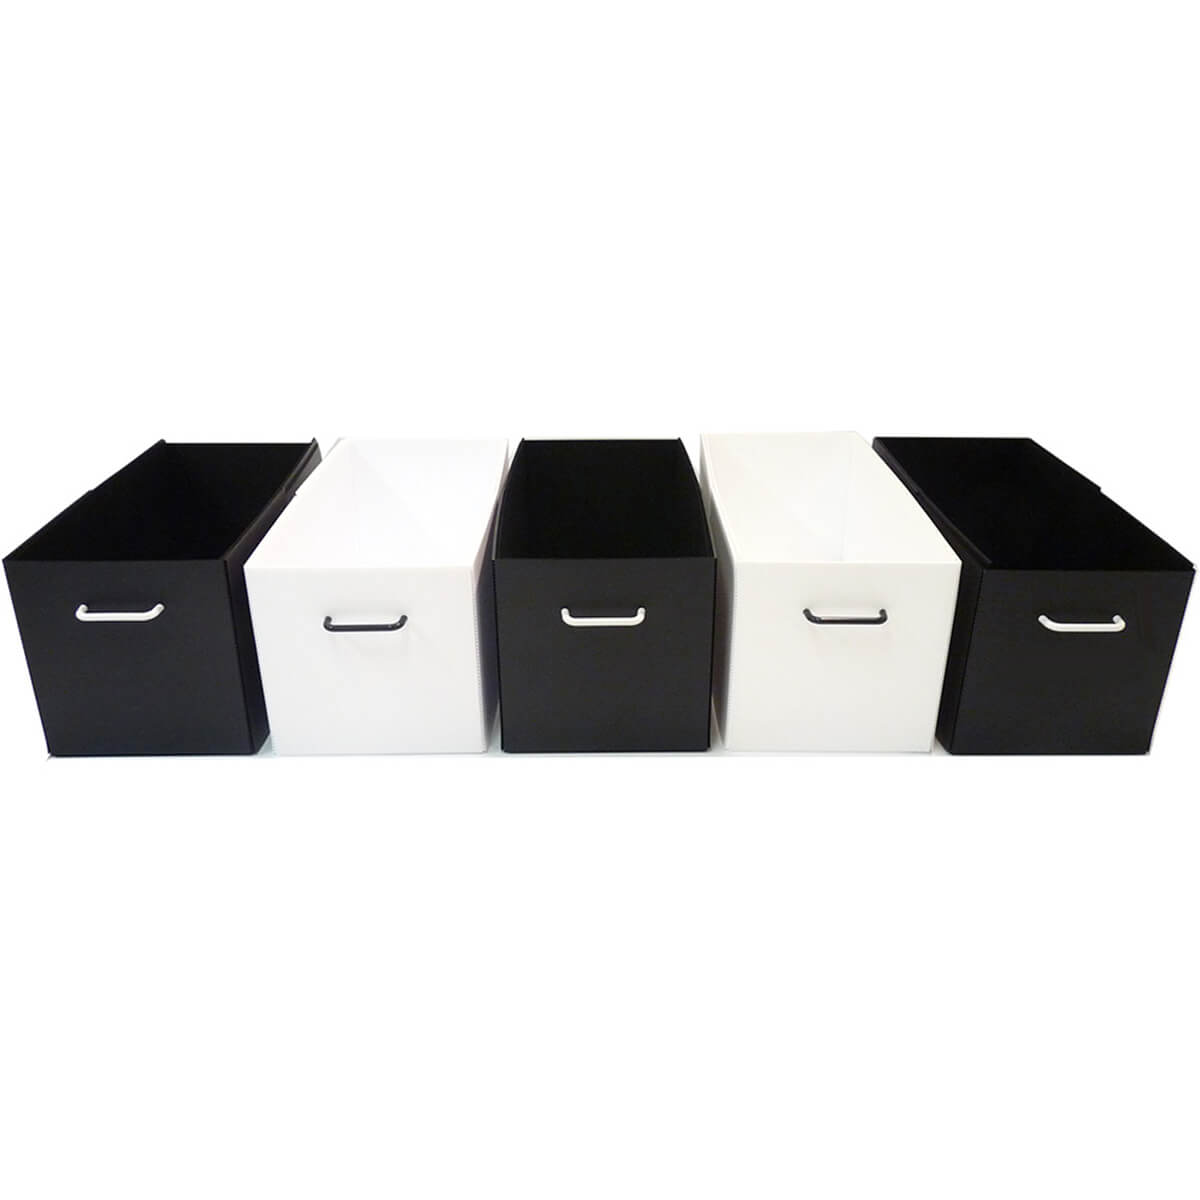 Bins For Xl Cage Black And White